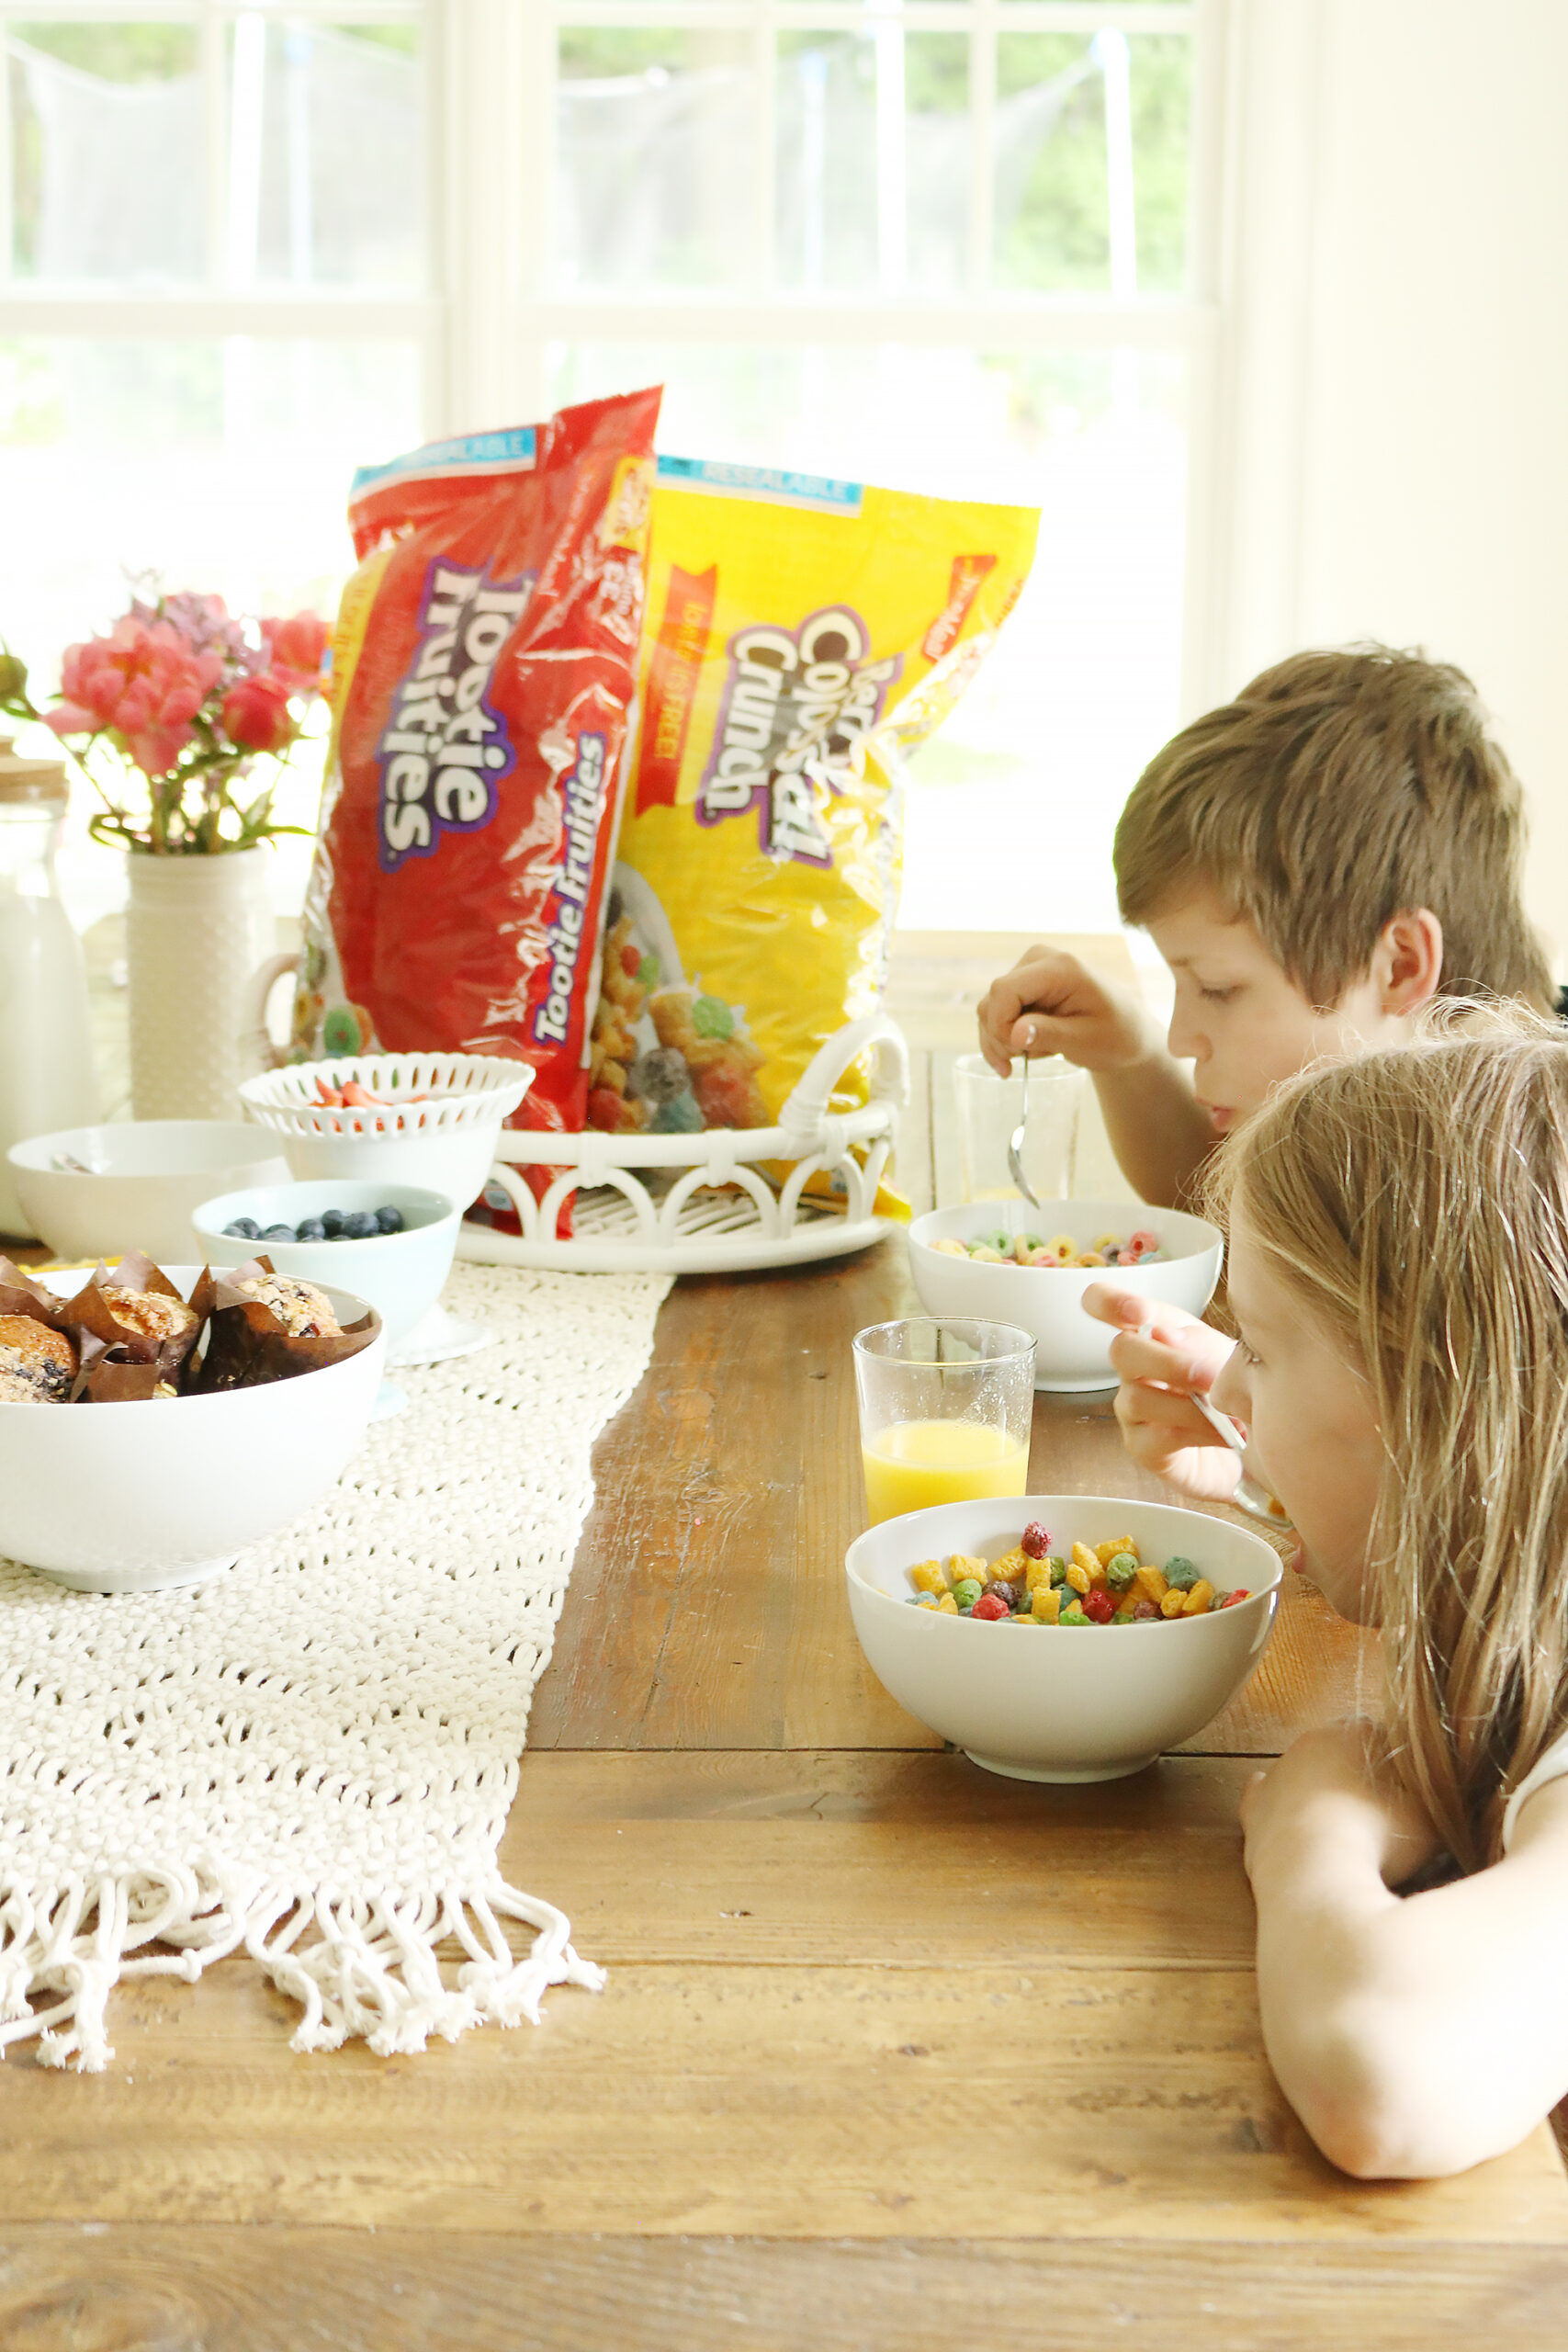 Five Ideas to Break-Up Quarantine Days like cereal for dinner with Malt-O-Meal cereals! || Darling Darleen Top Lifestyle CT Blogger #maltomeal #quarantineideas